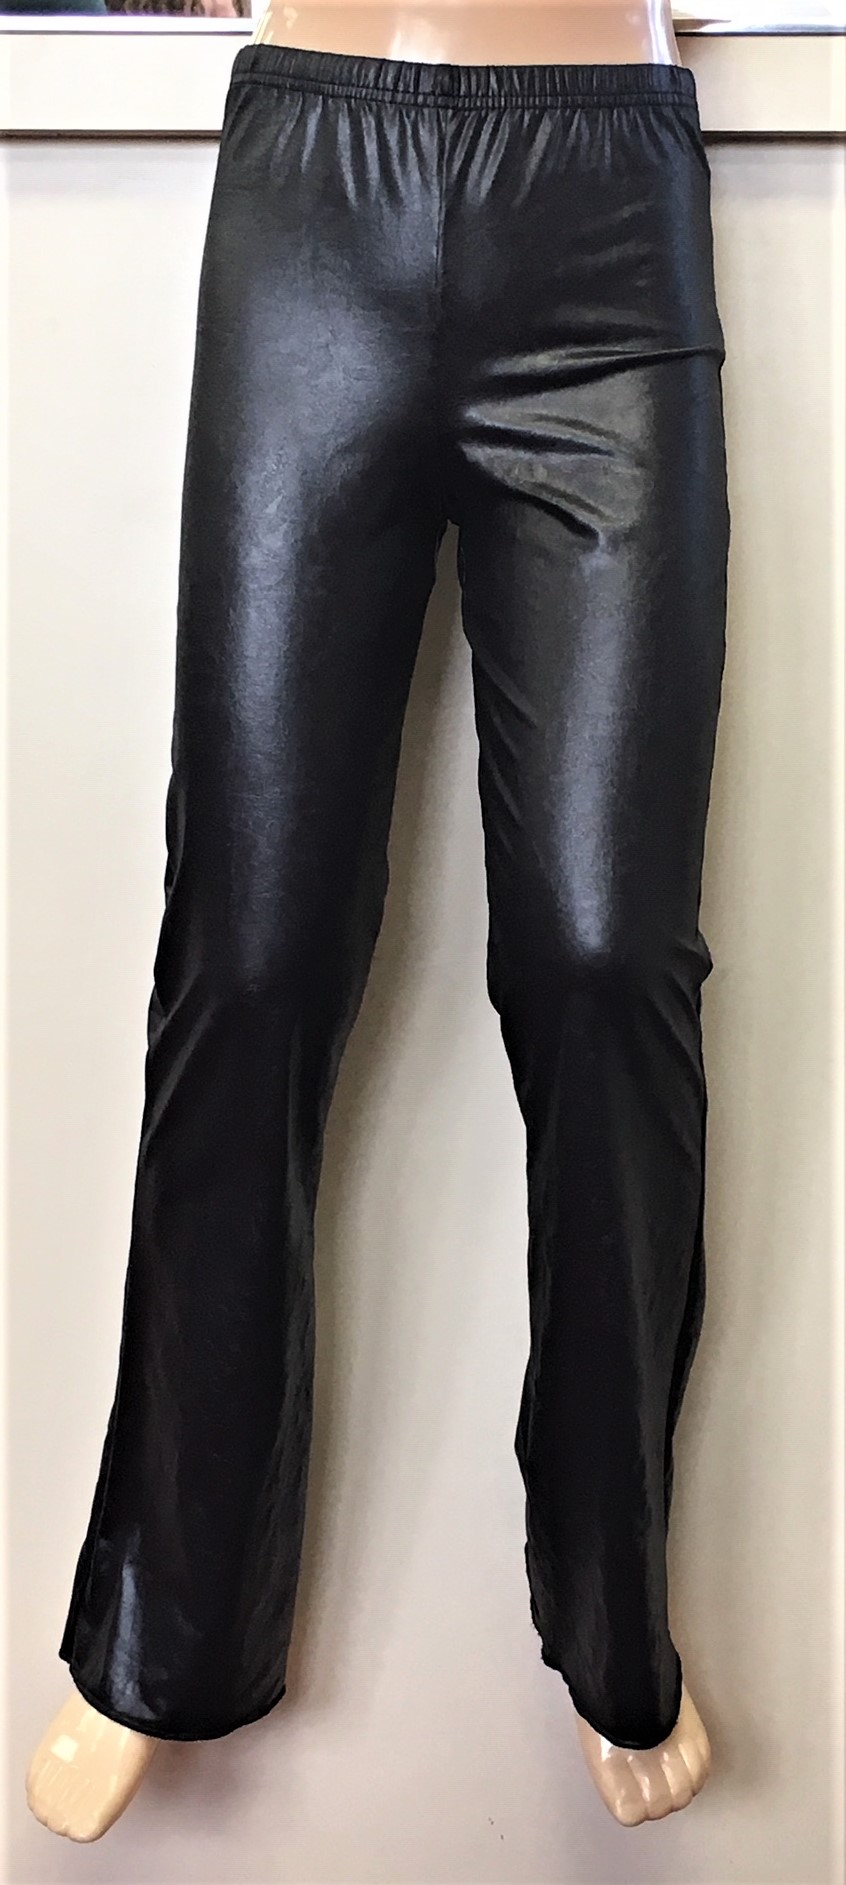 Bodywrappers Children's Faux Leather Jazz Pants